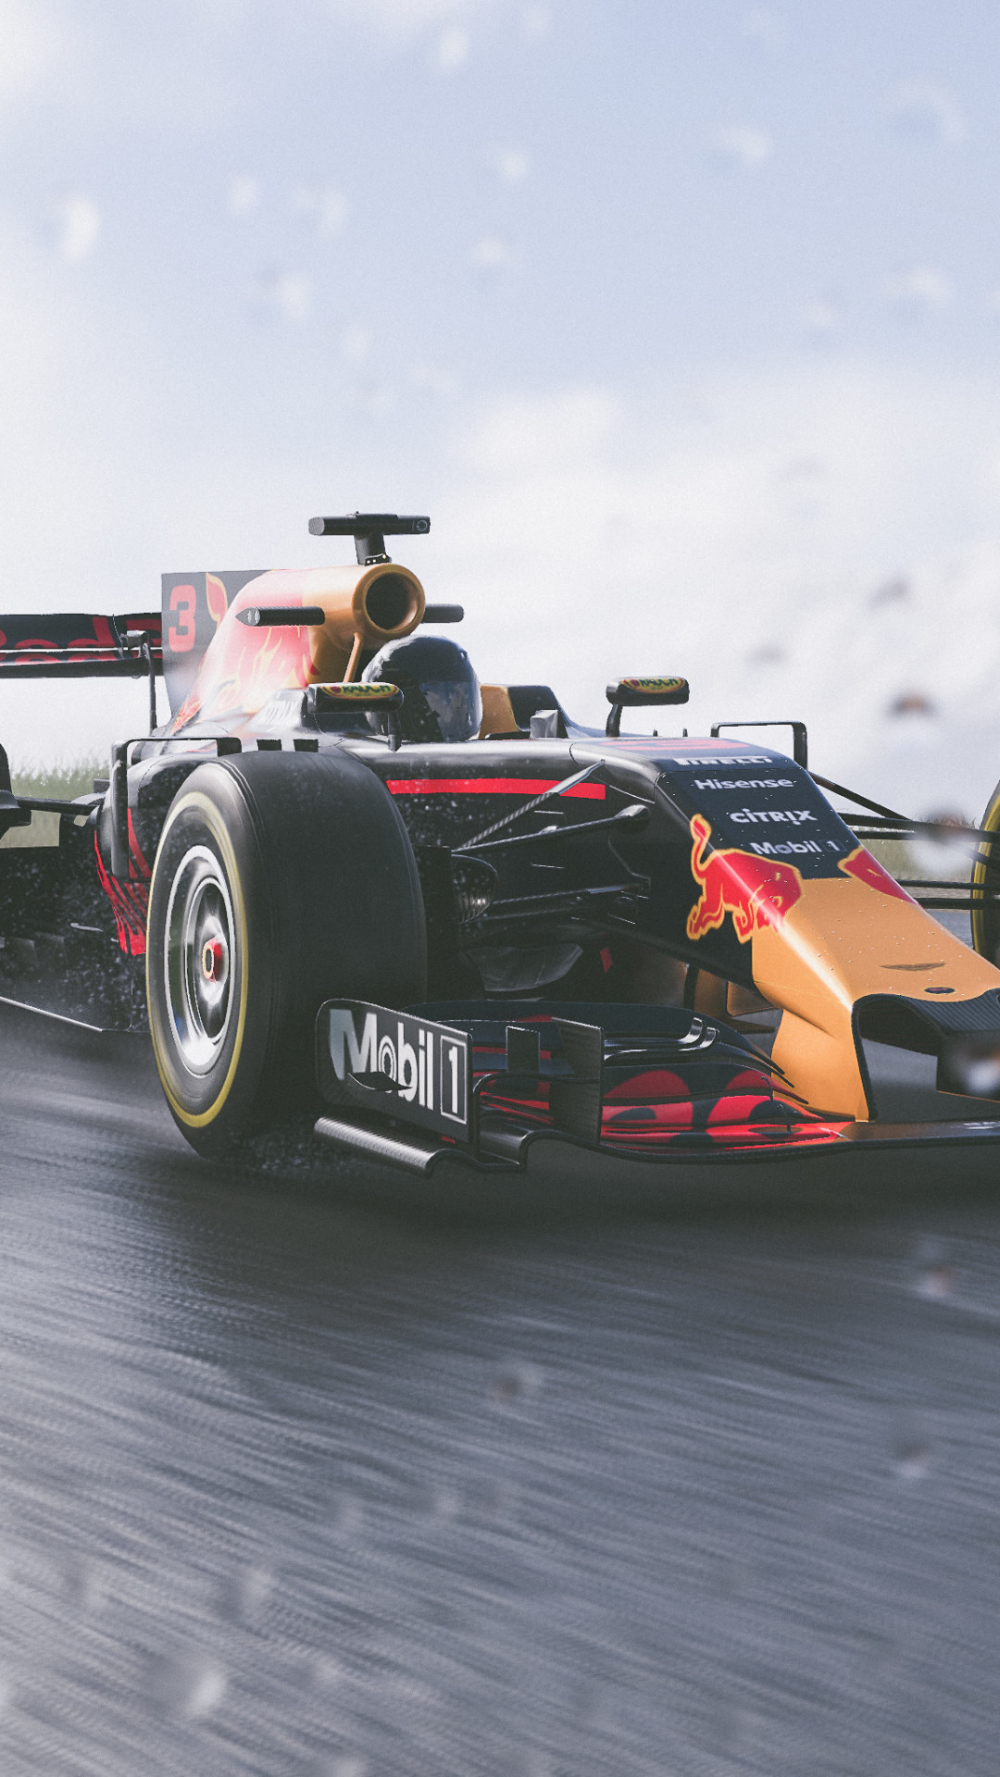 The Crew 2 Red Bull F1 Car 4k In 1080x1920 Resolution ...